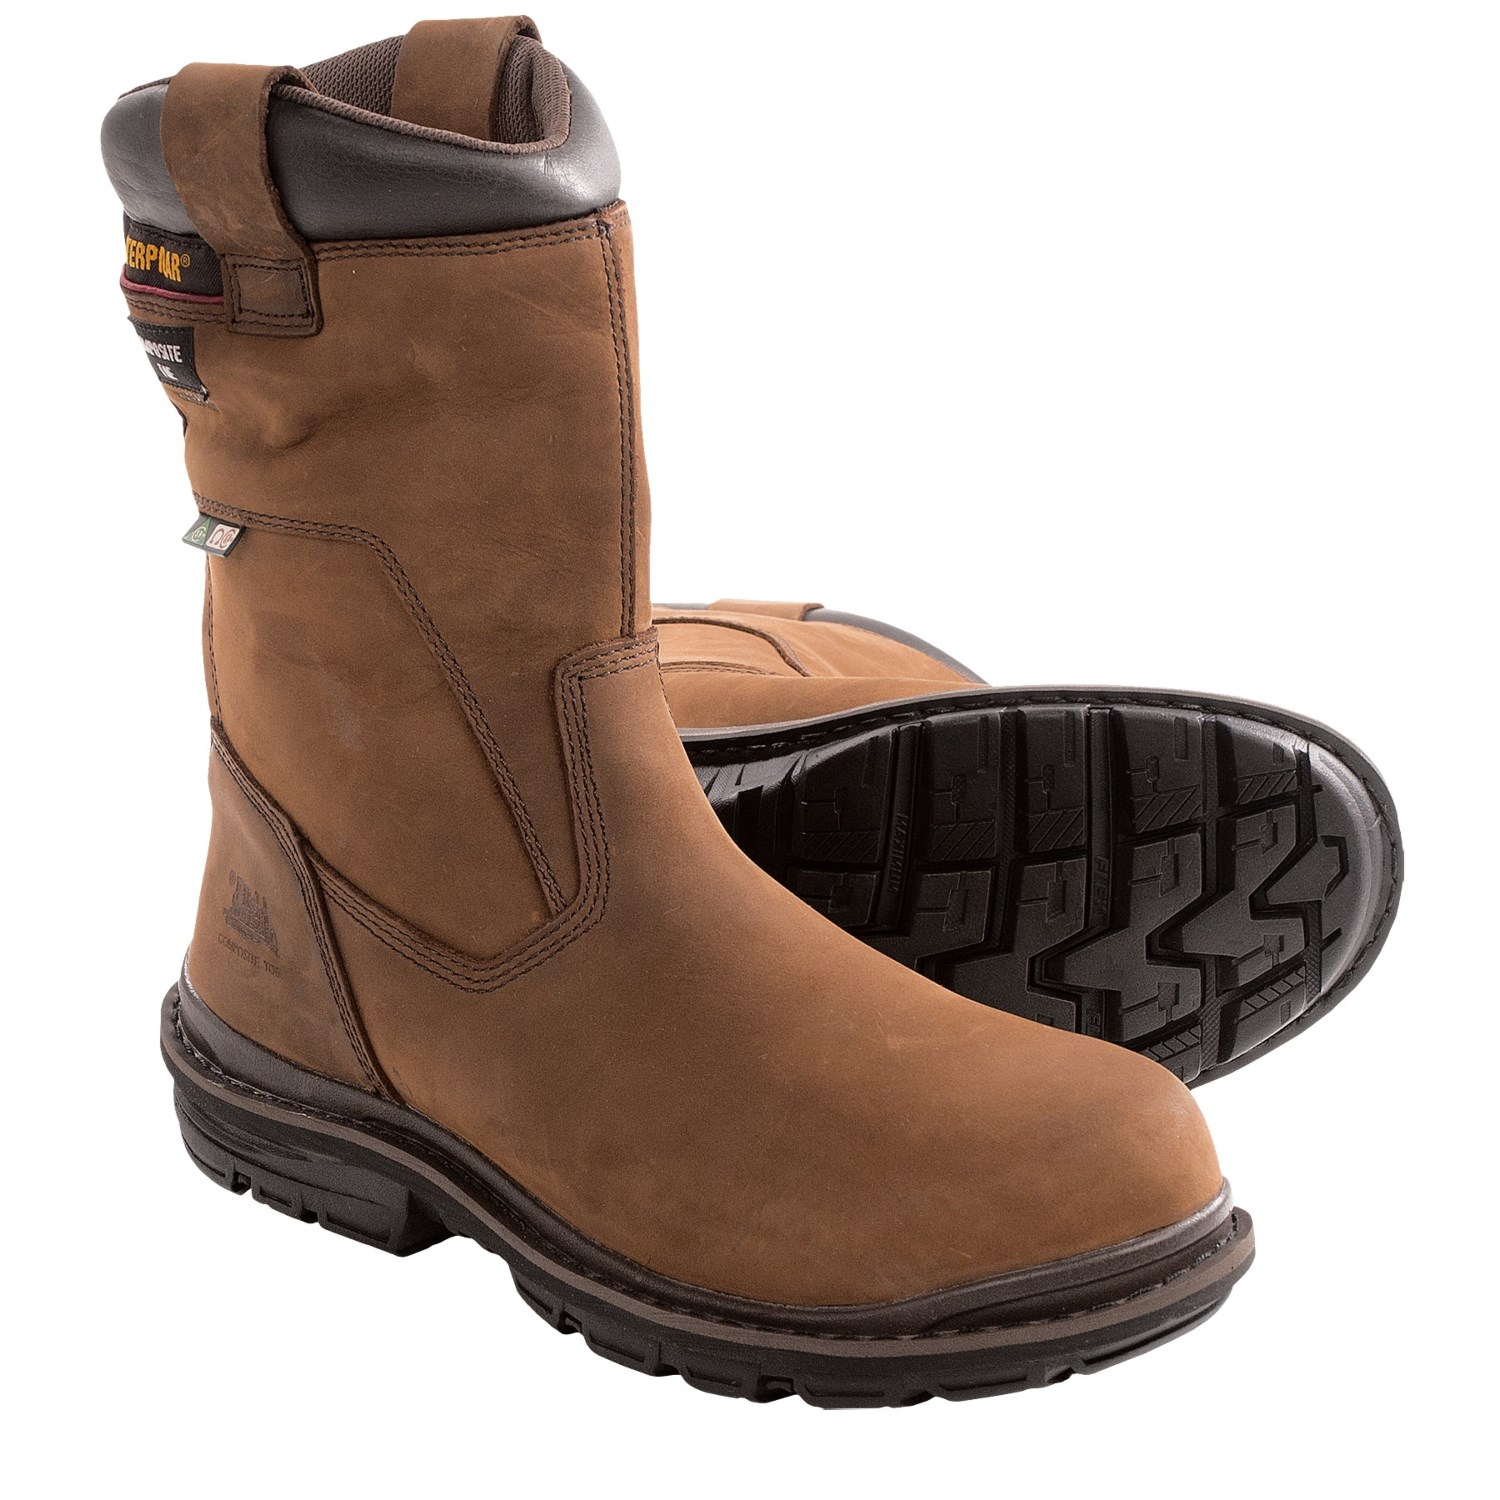 Best place to buy work boots